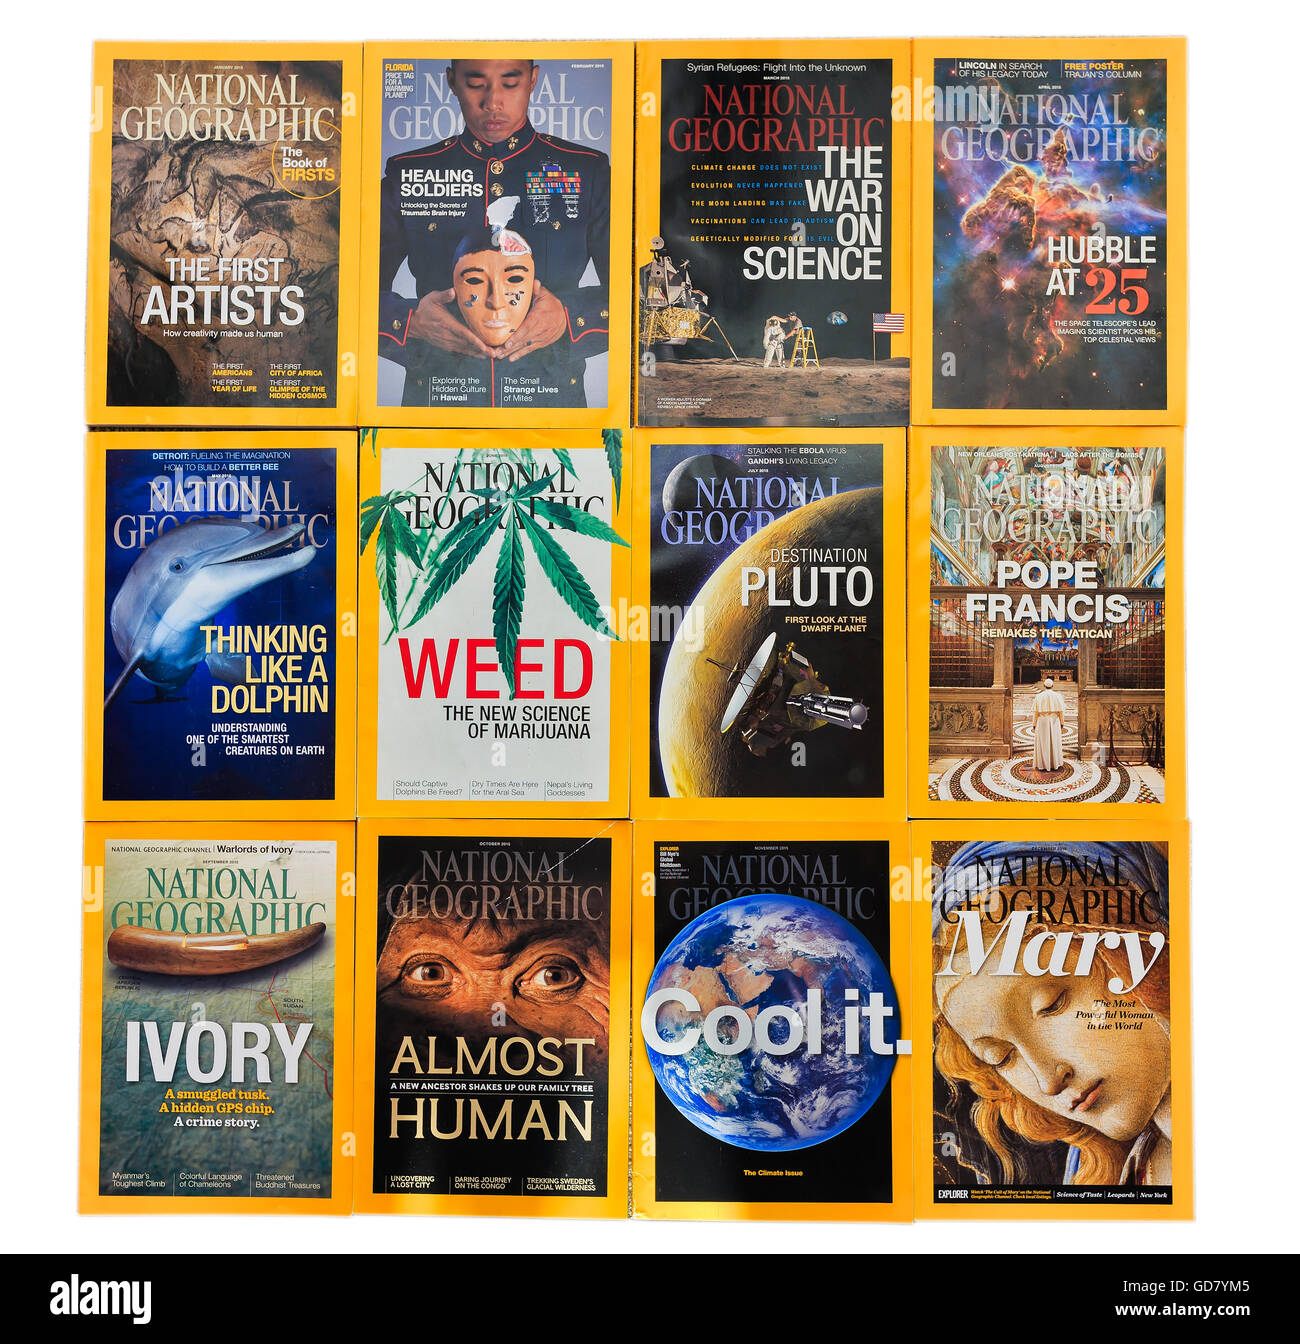 Sydney - JUL 16: Full 2015 year collection of National Geographic Magazines on Jul. 10, 2016 in Sydney, Australia. - Stock Image